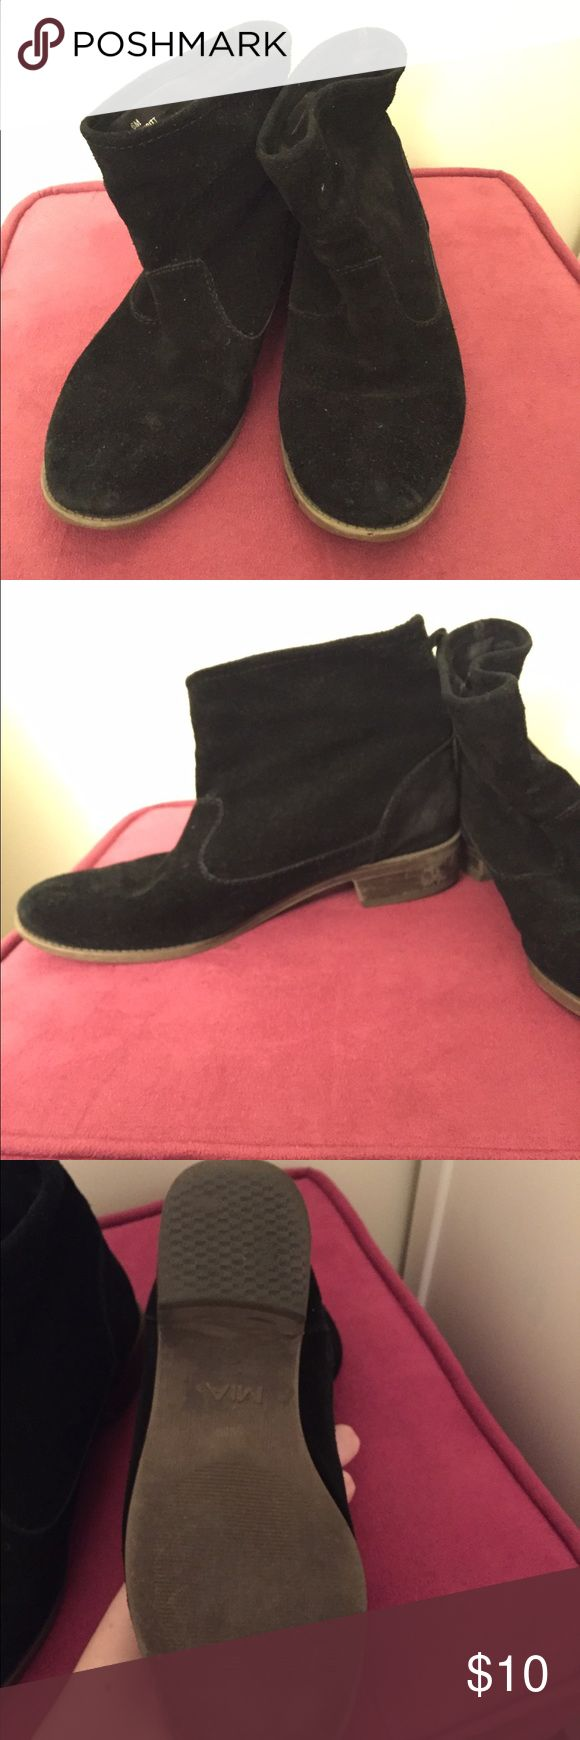 Black Leather Ankle Boots These MIA all leather upper boots are so comfortable, you'll want to life in them! They are slightly worn, but because they are leather it is not noticeable at all. I replaced the heels recently so the soles are like new! Offers are encouraged :) MIA Shoes Ankle Boots & Booties